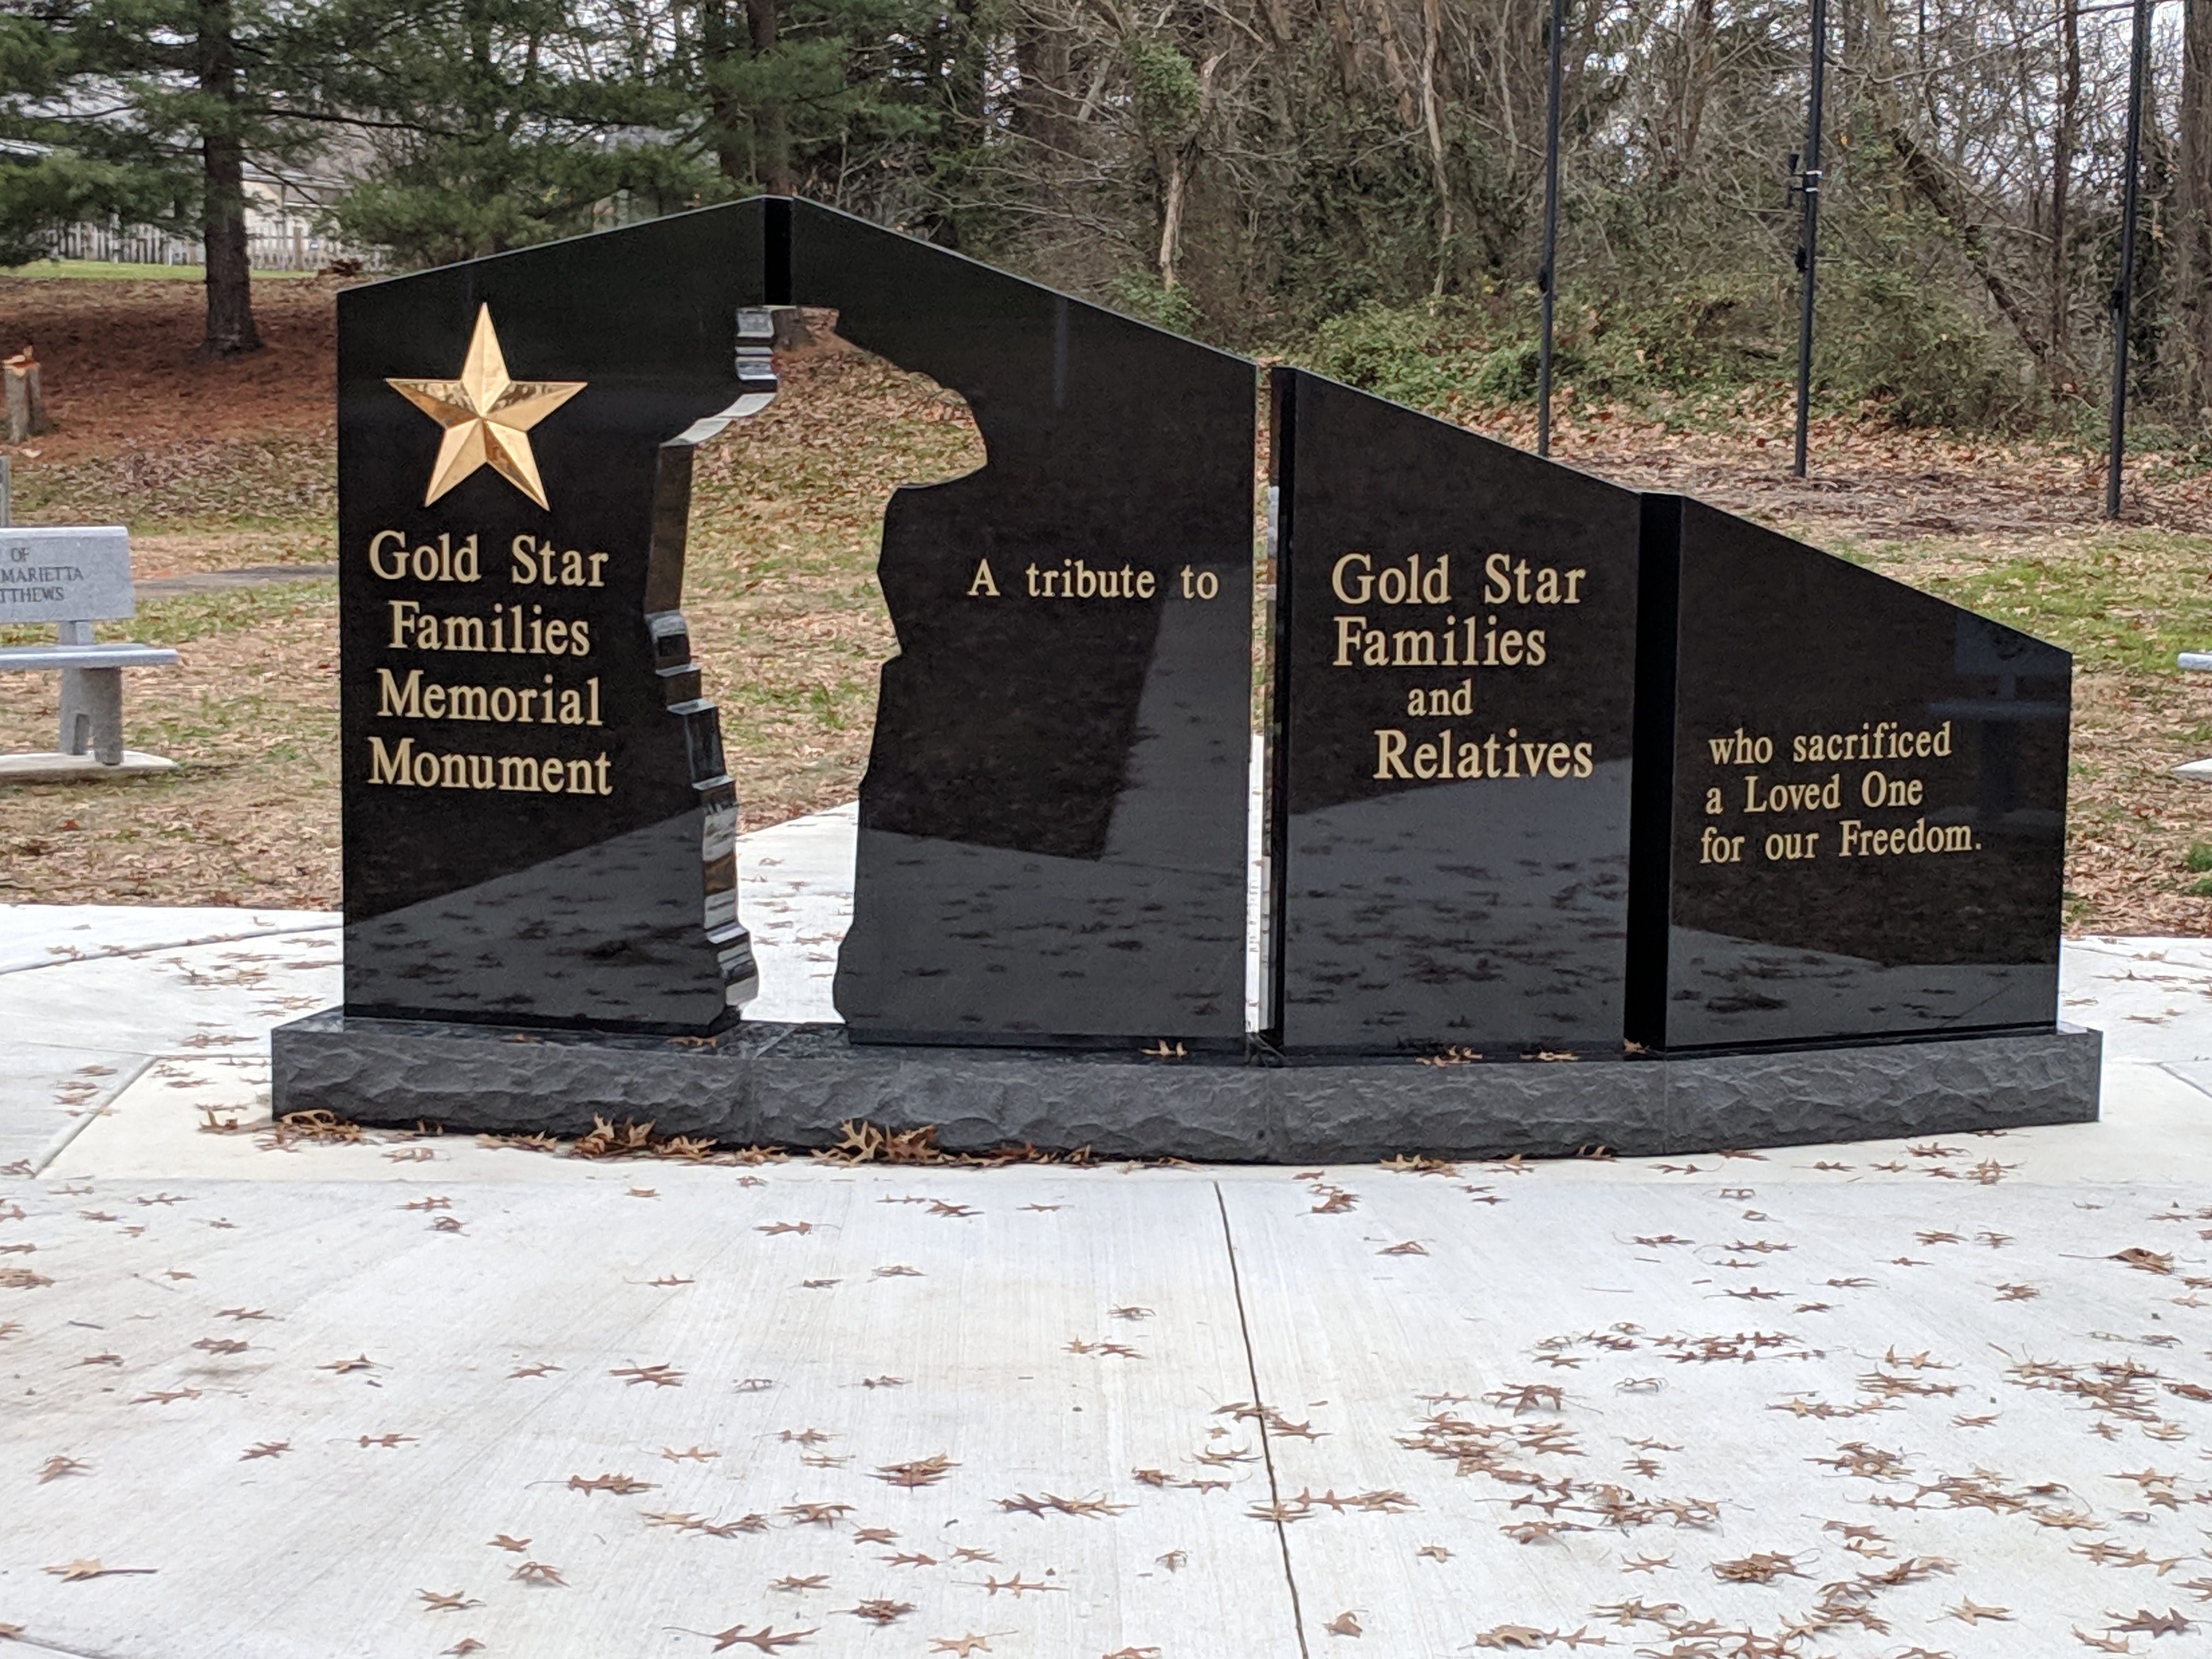 This Gold Star Monument is proposed for the Richland County Courthouse lawn. Organizers are raising money to purchase the monument.